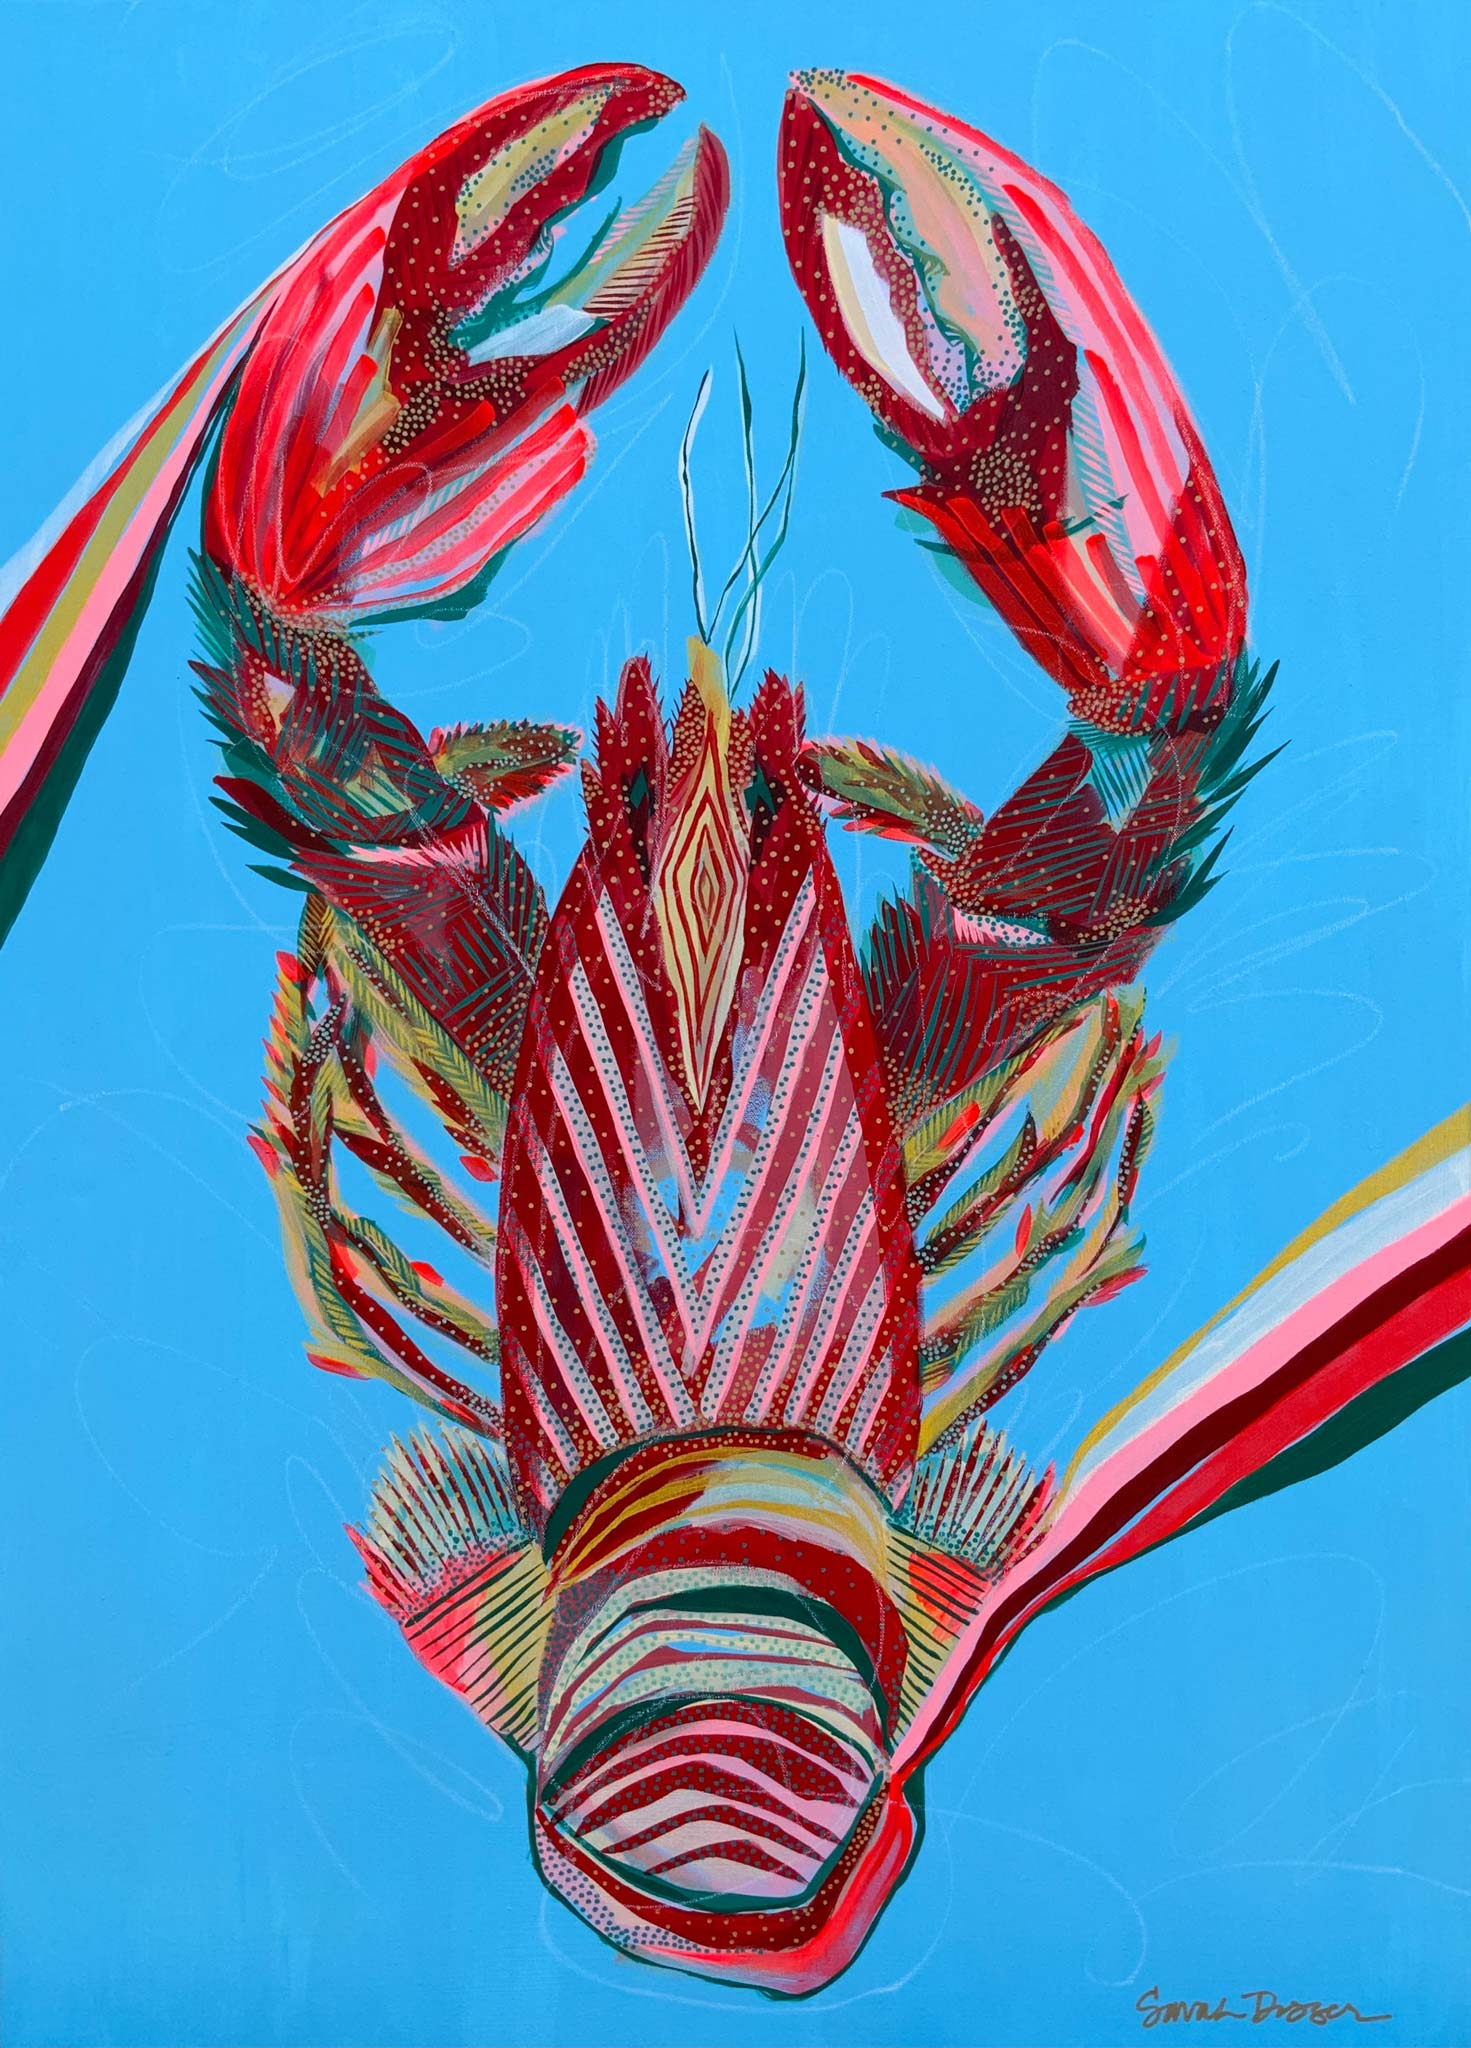 acrylic, lobster, red, rainbow, blue ground, bold lines, layered lines, graphic style